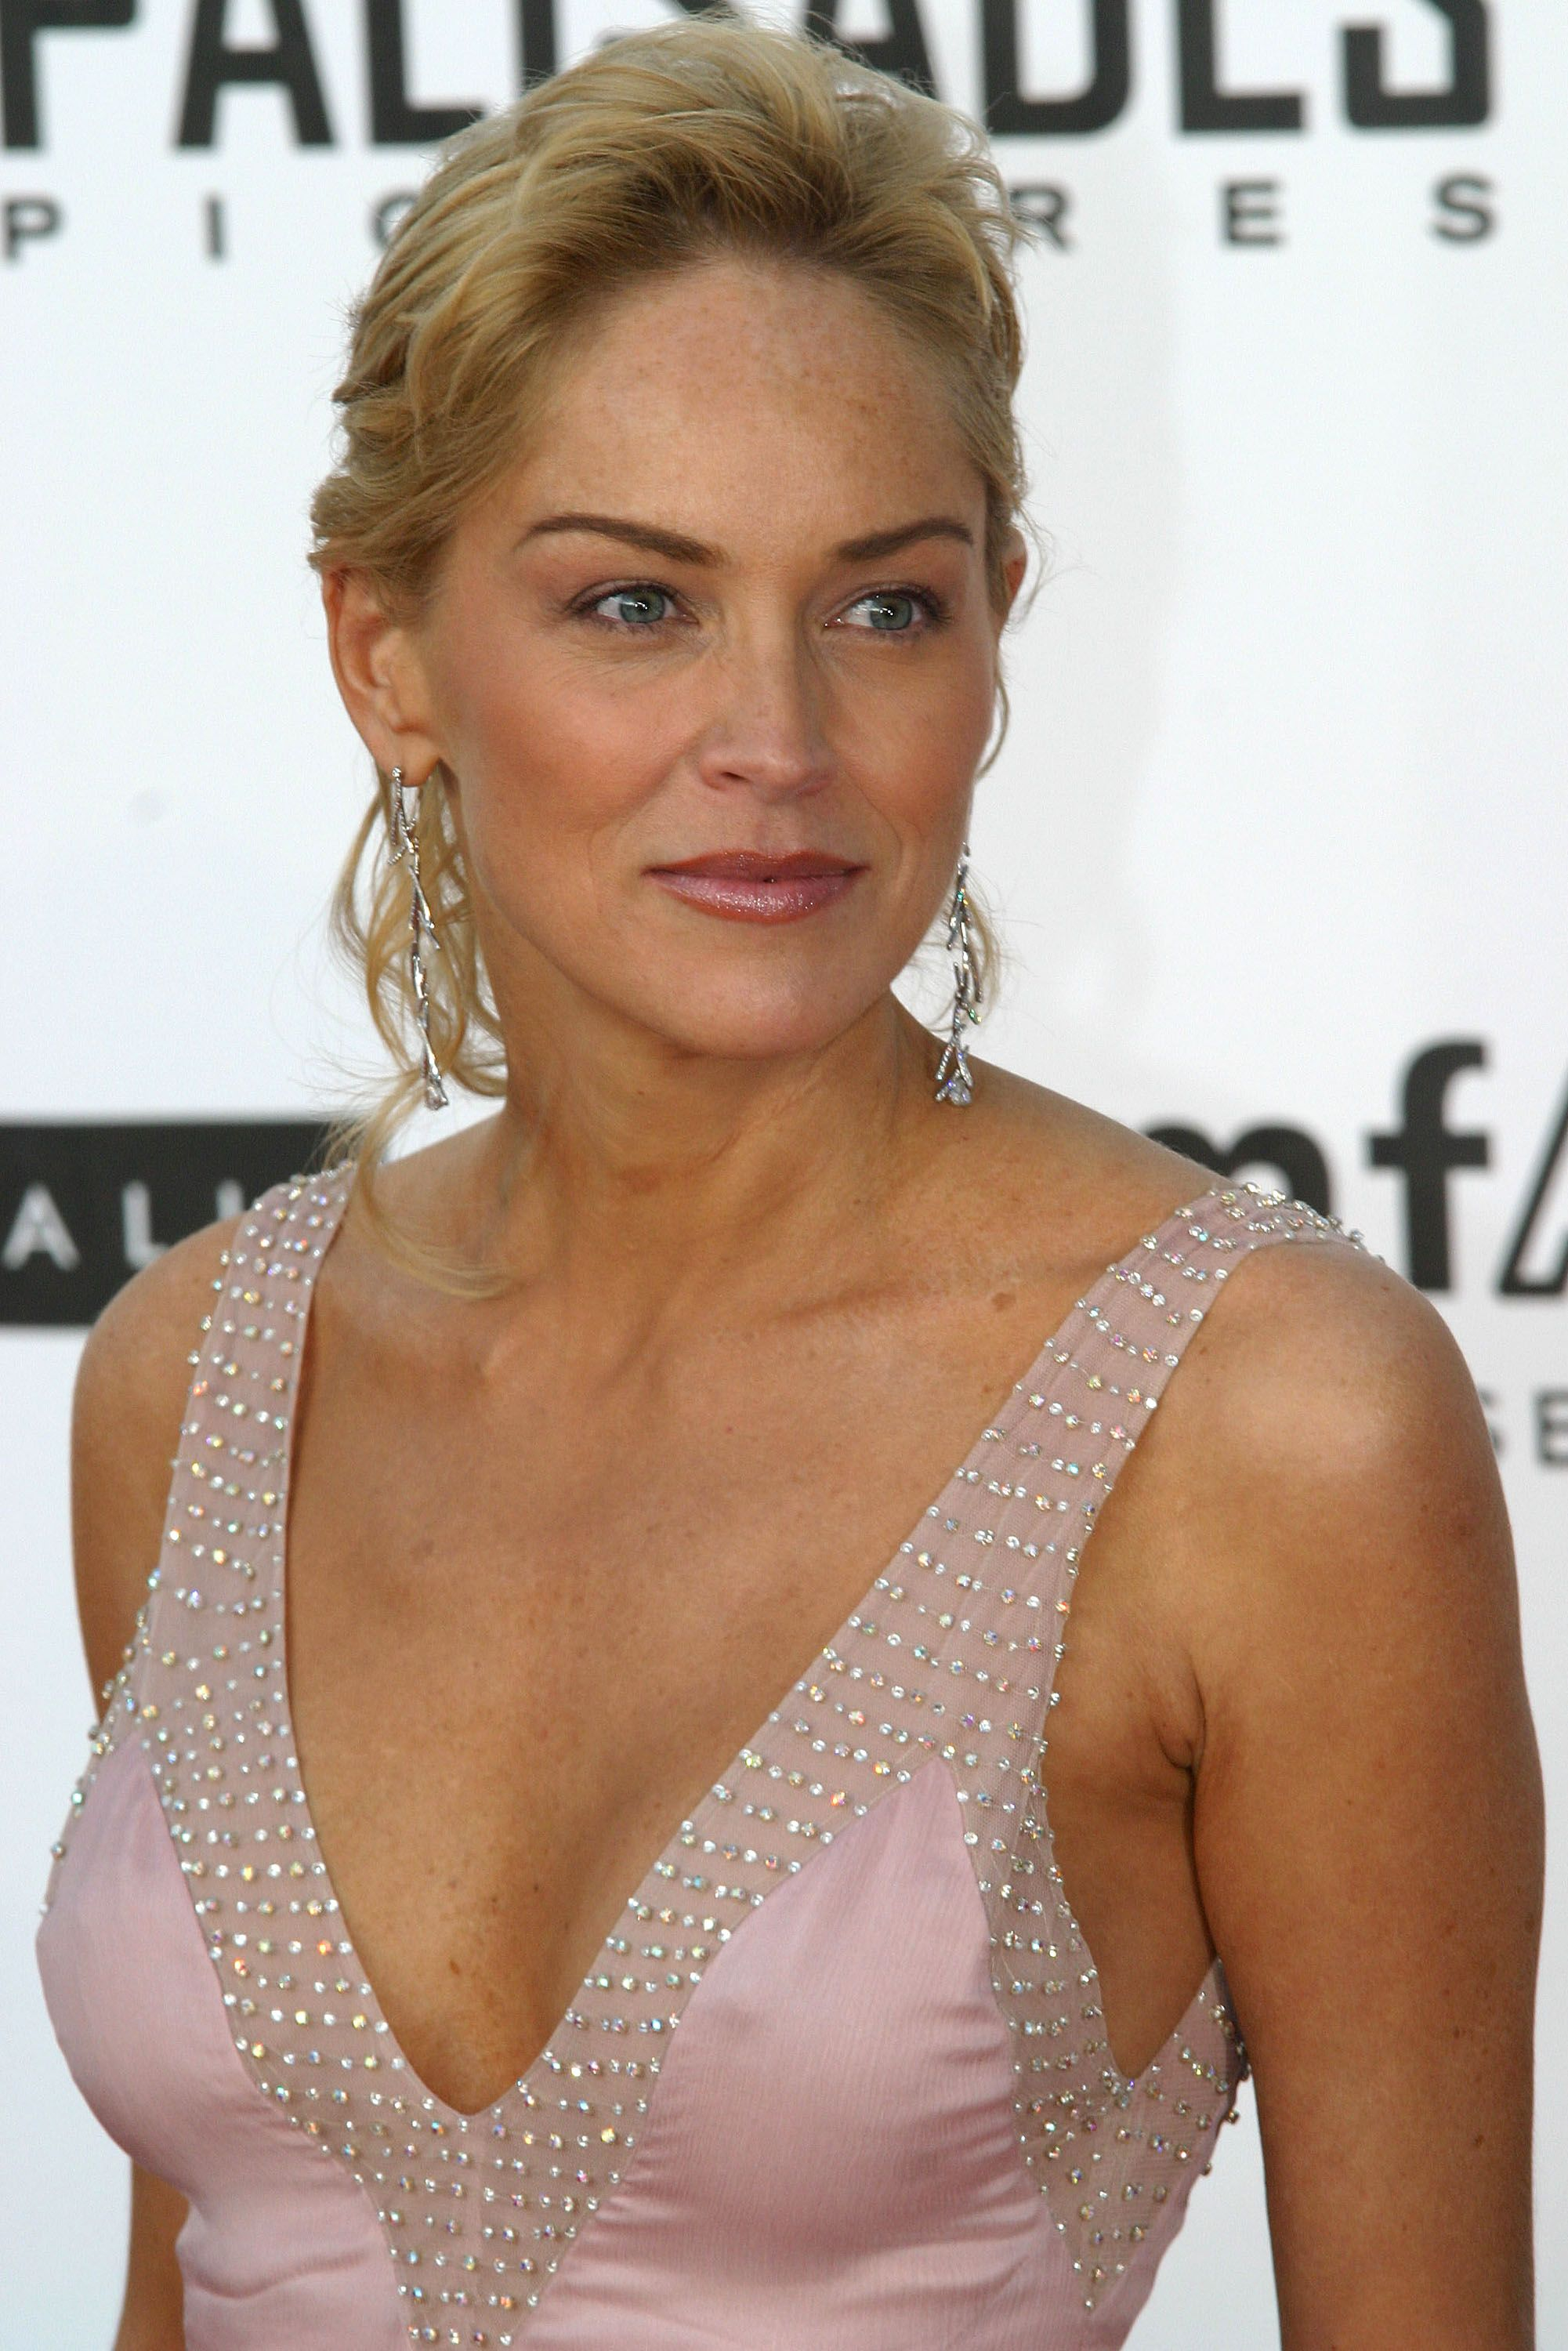 sharon stone imdbsharon stone young, sharon stone instagram, sharon stone gif, sharon stone movie, sharon stone interview, sharon stone wiki, sharon stone quotes, sharon stone биография, sharon stone wikipedia, sharon stone age, sharon stone (@sharonstone), sharon stone imdb, sharon stone kinopoisk, sharon stone hair, sharon stone in basic instinct youtube, sharon stone diabetes, sharon stone catwoman, sharon stone facebook, sharon stone instagram official, sharon stone mbti